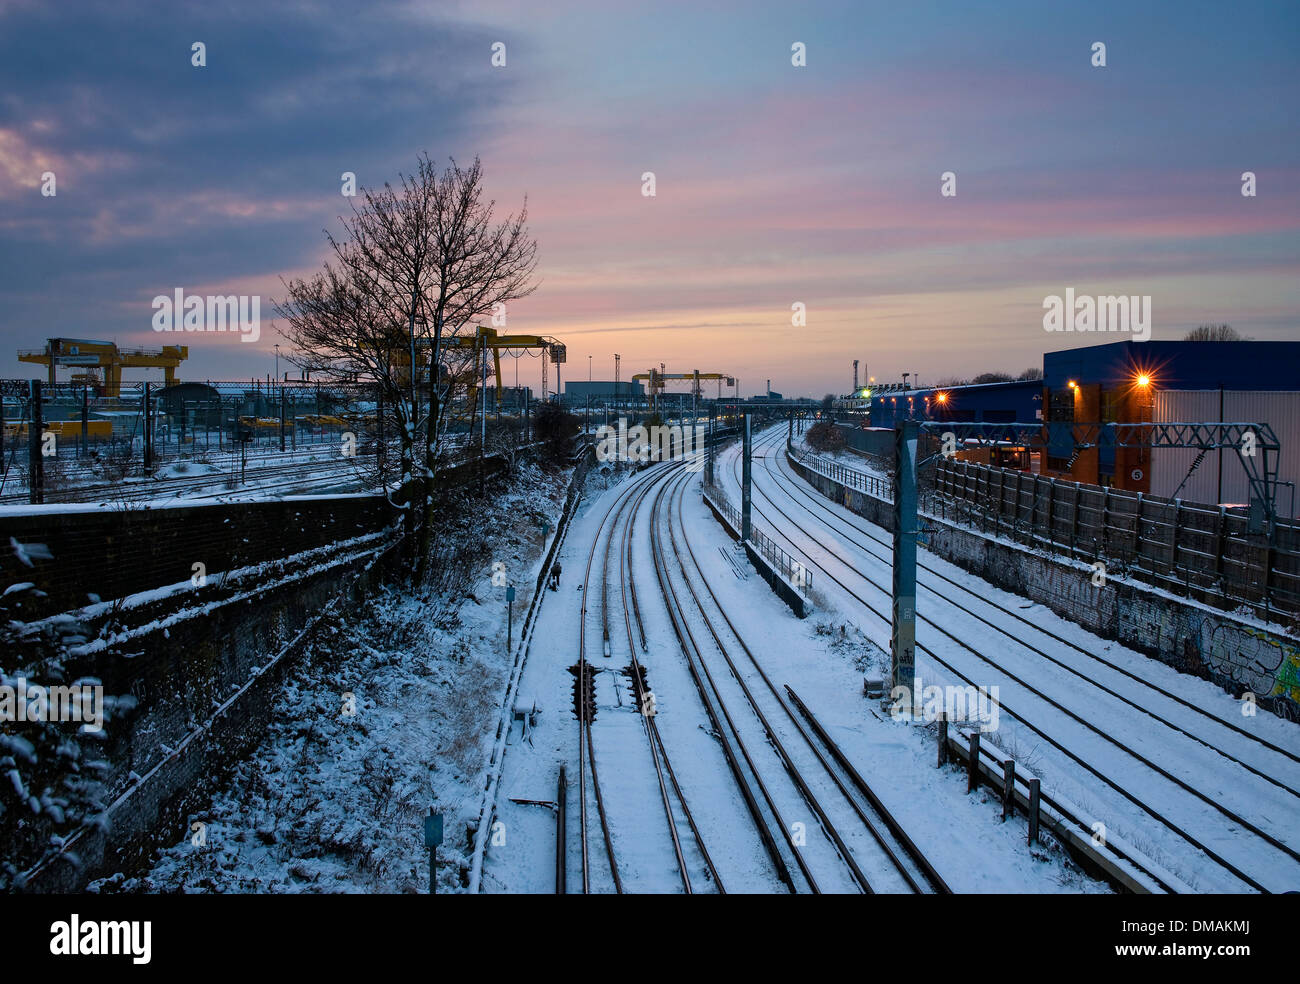 Willesden Junction, North West London, England - Stock Image